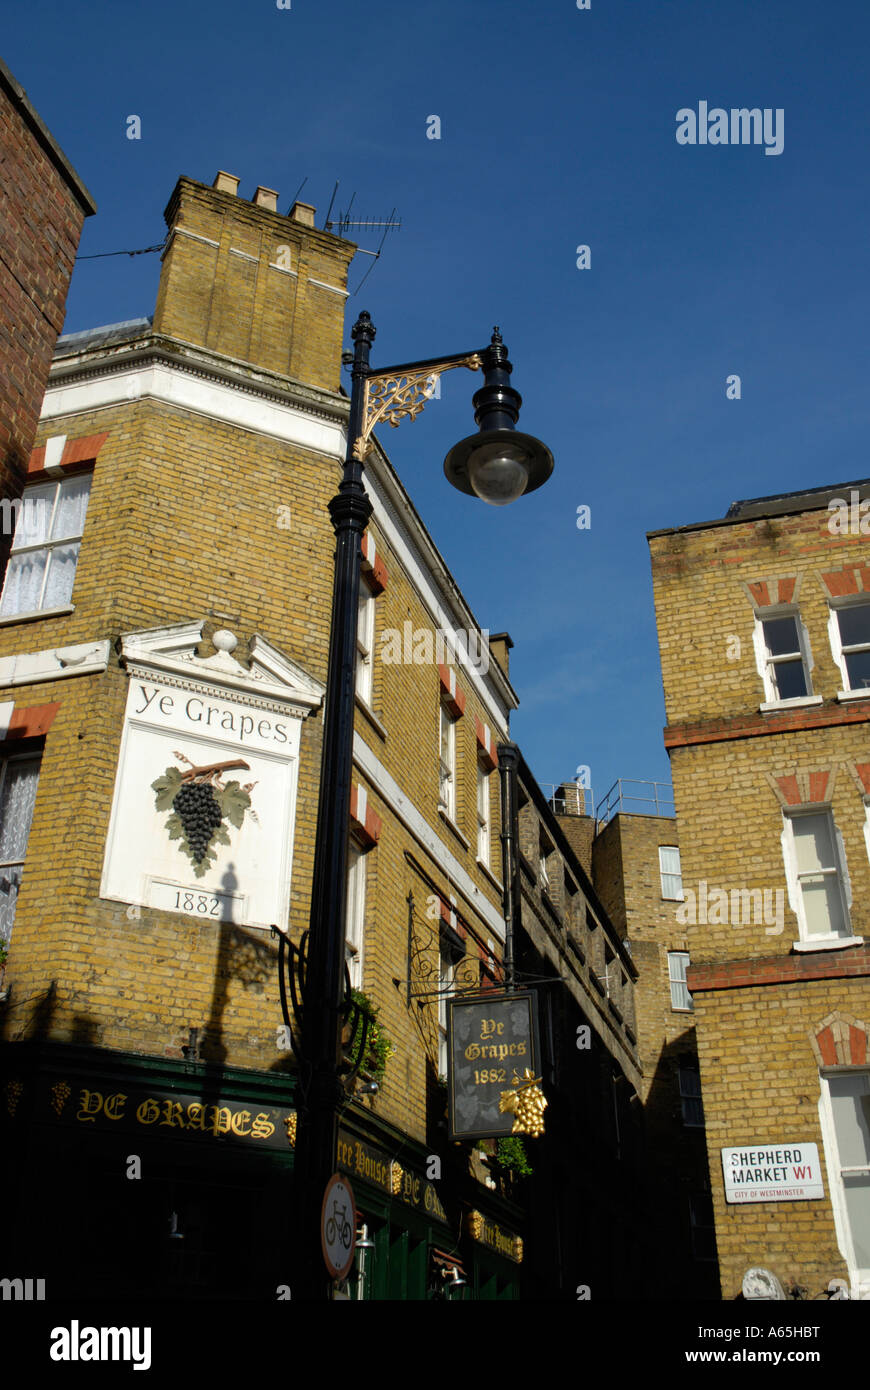 View of Shepherd Market and Ye Grapes pub in Mayfair London England - Stock Image